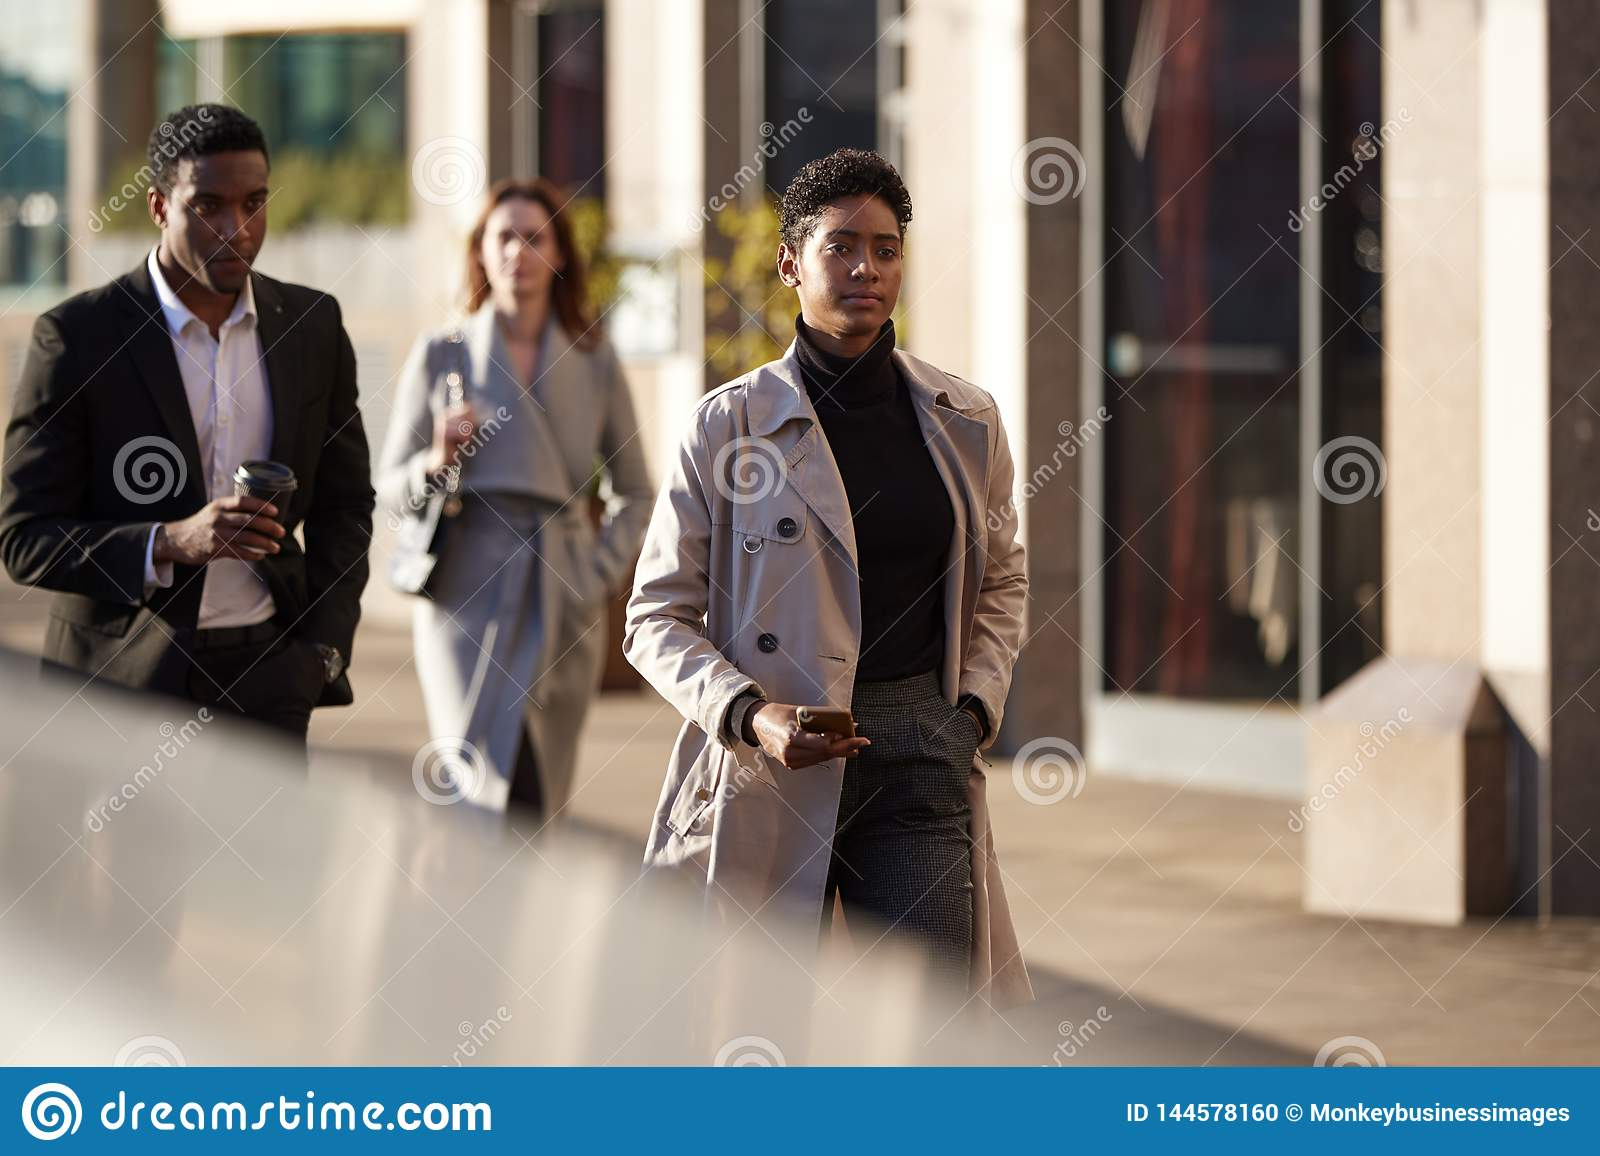 Three millennial city workers walking in a London street, selective focus